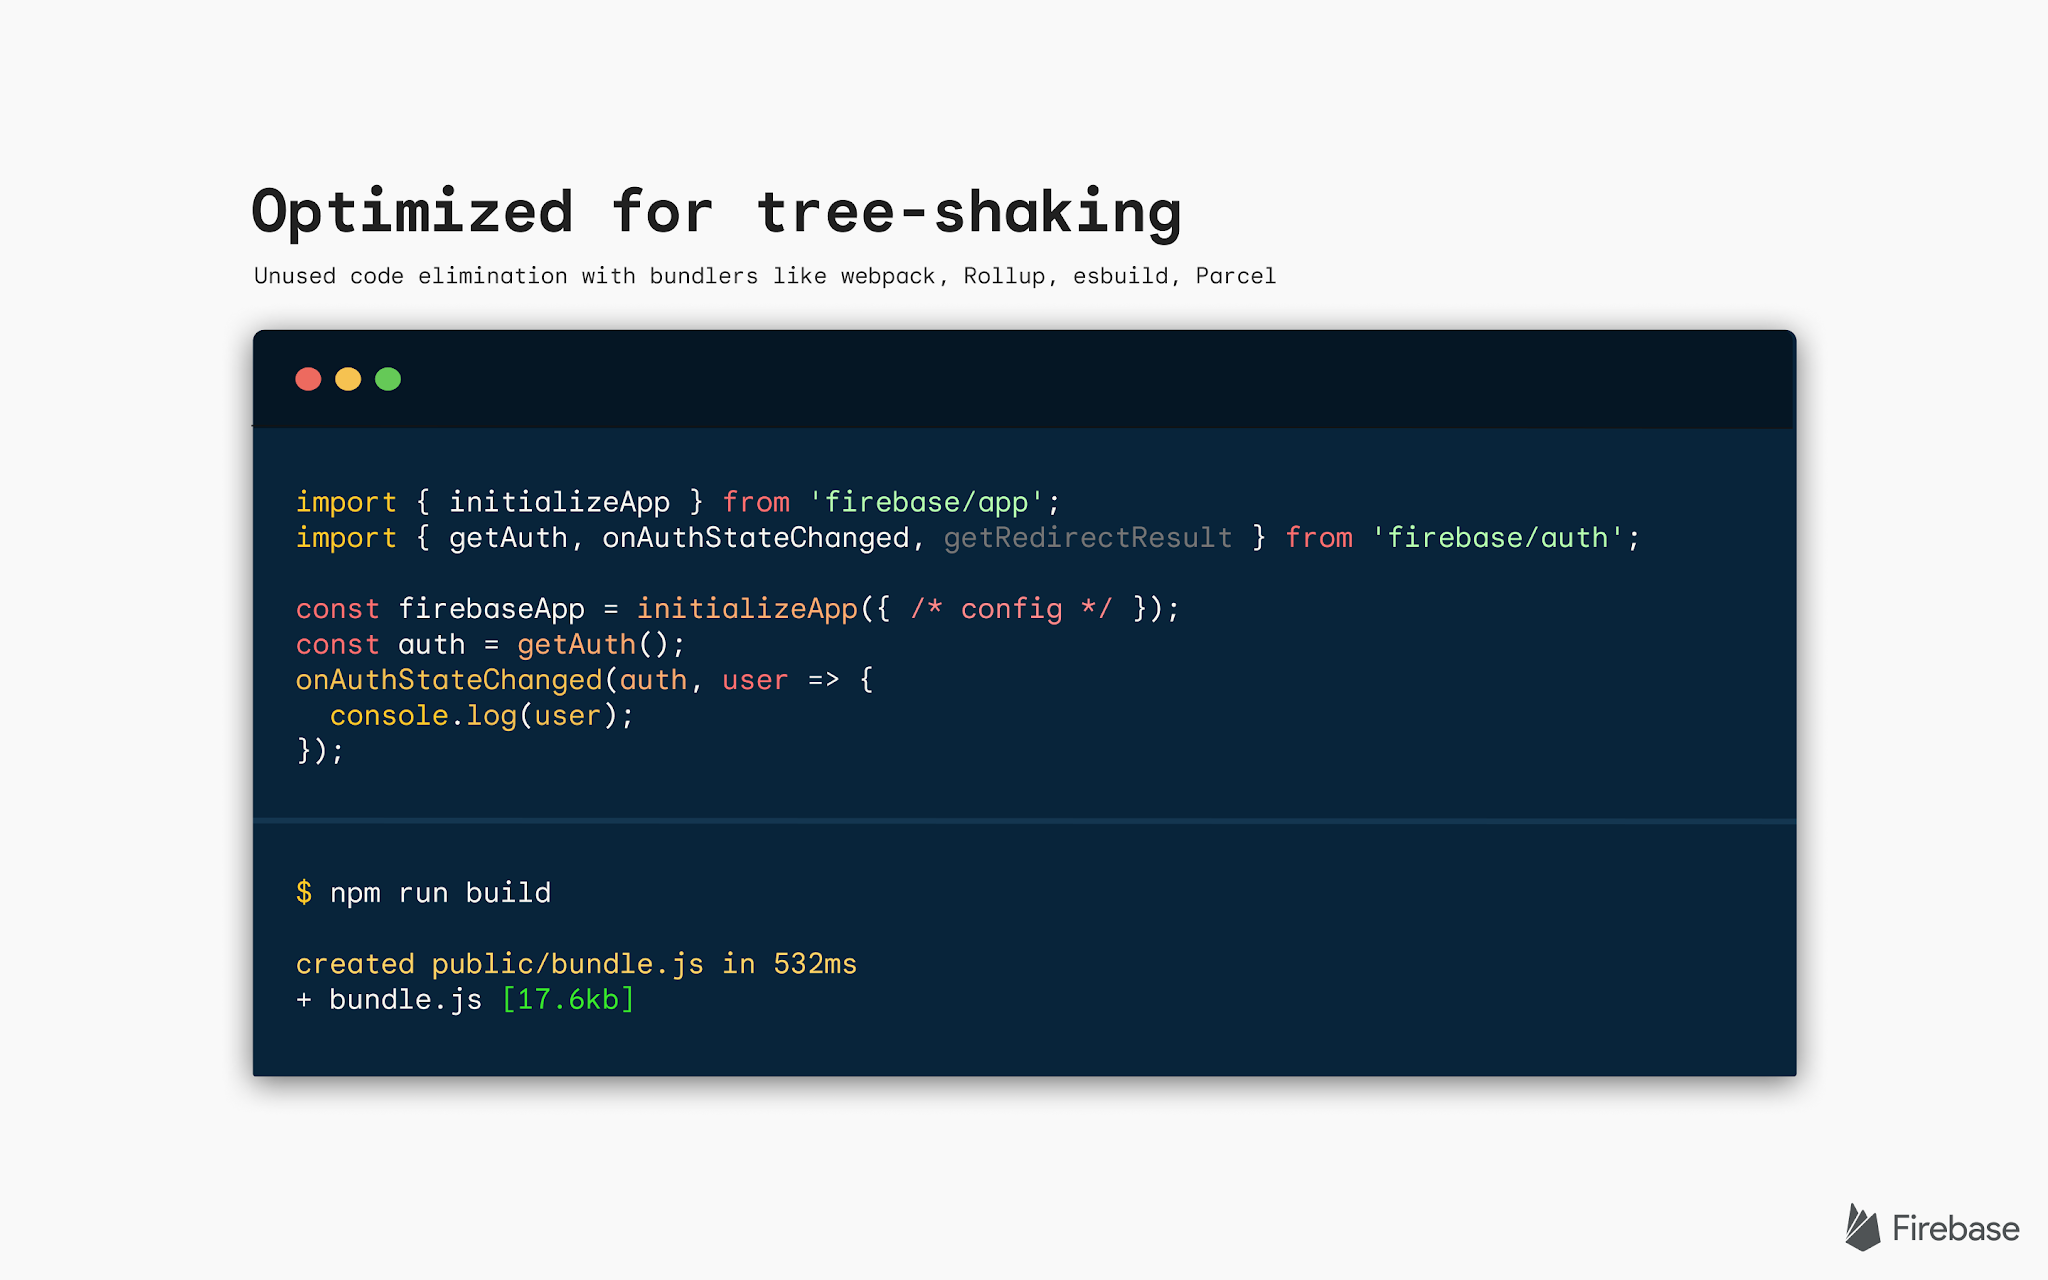 Image of code snippet with text that says Optimized for tree-shaking. Unused code elimination with bundlers like webpack, Rollup, esbuild, Parcel